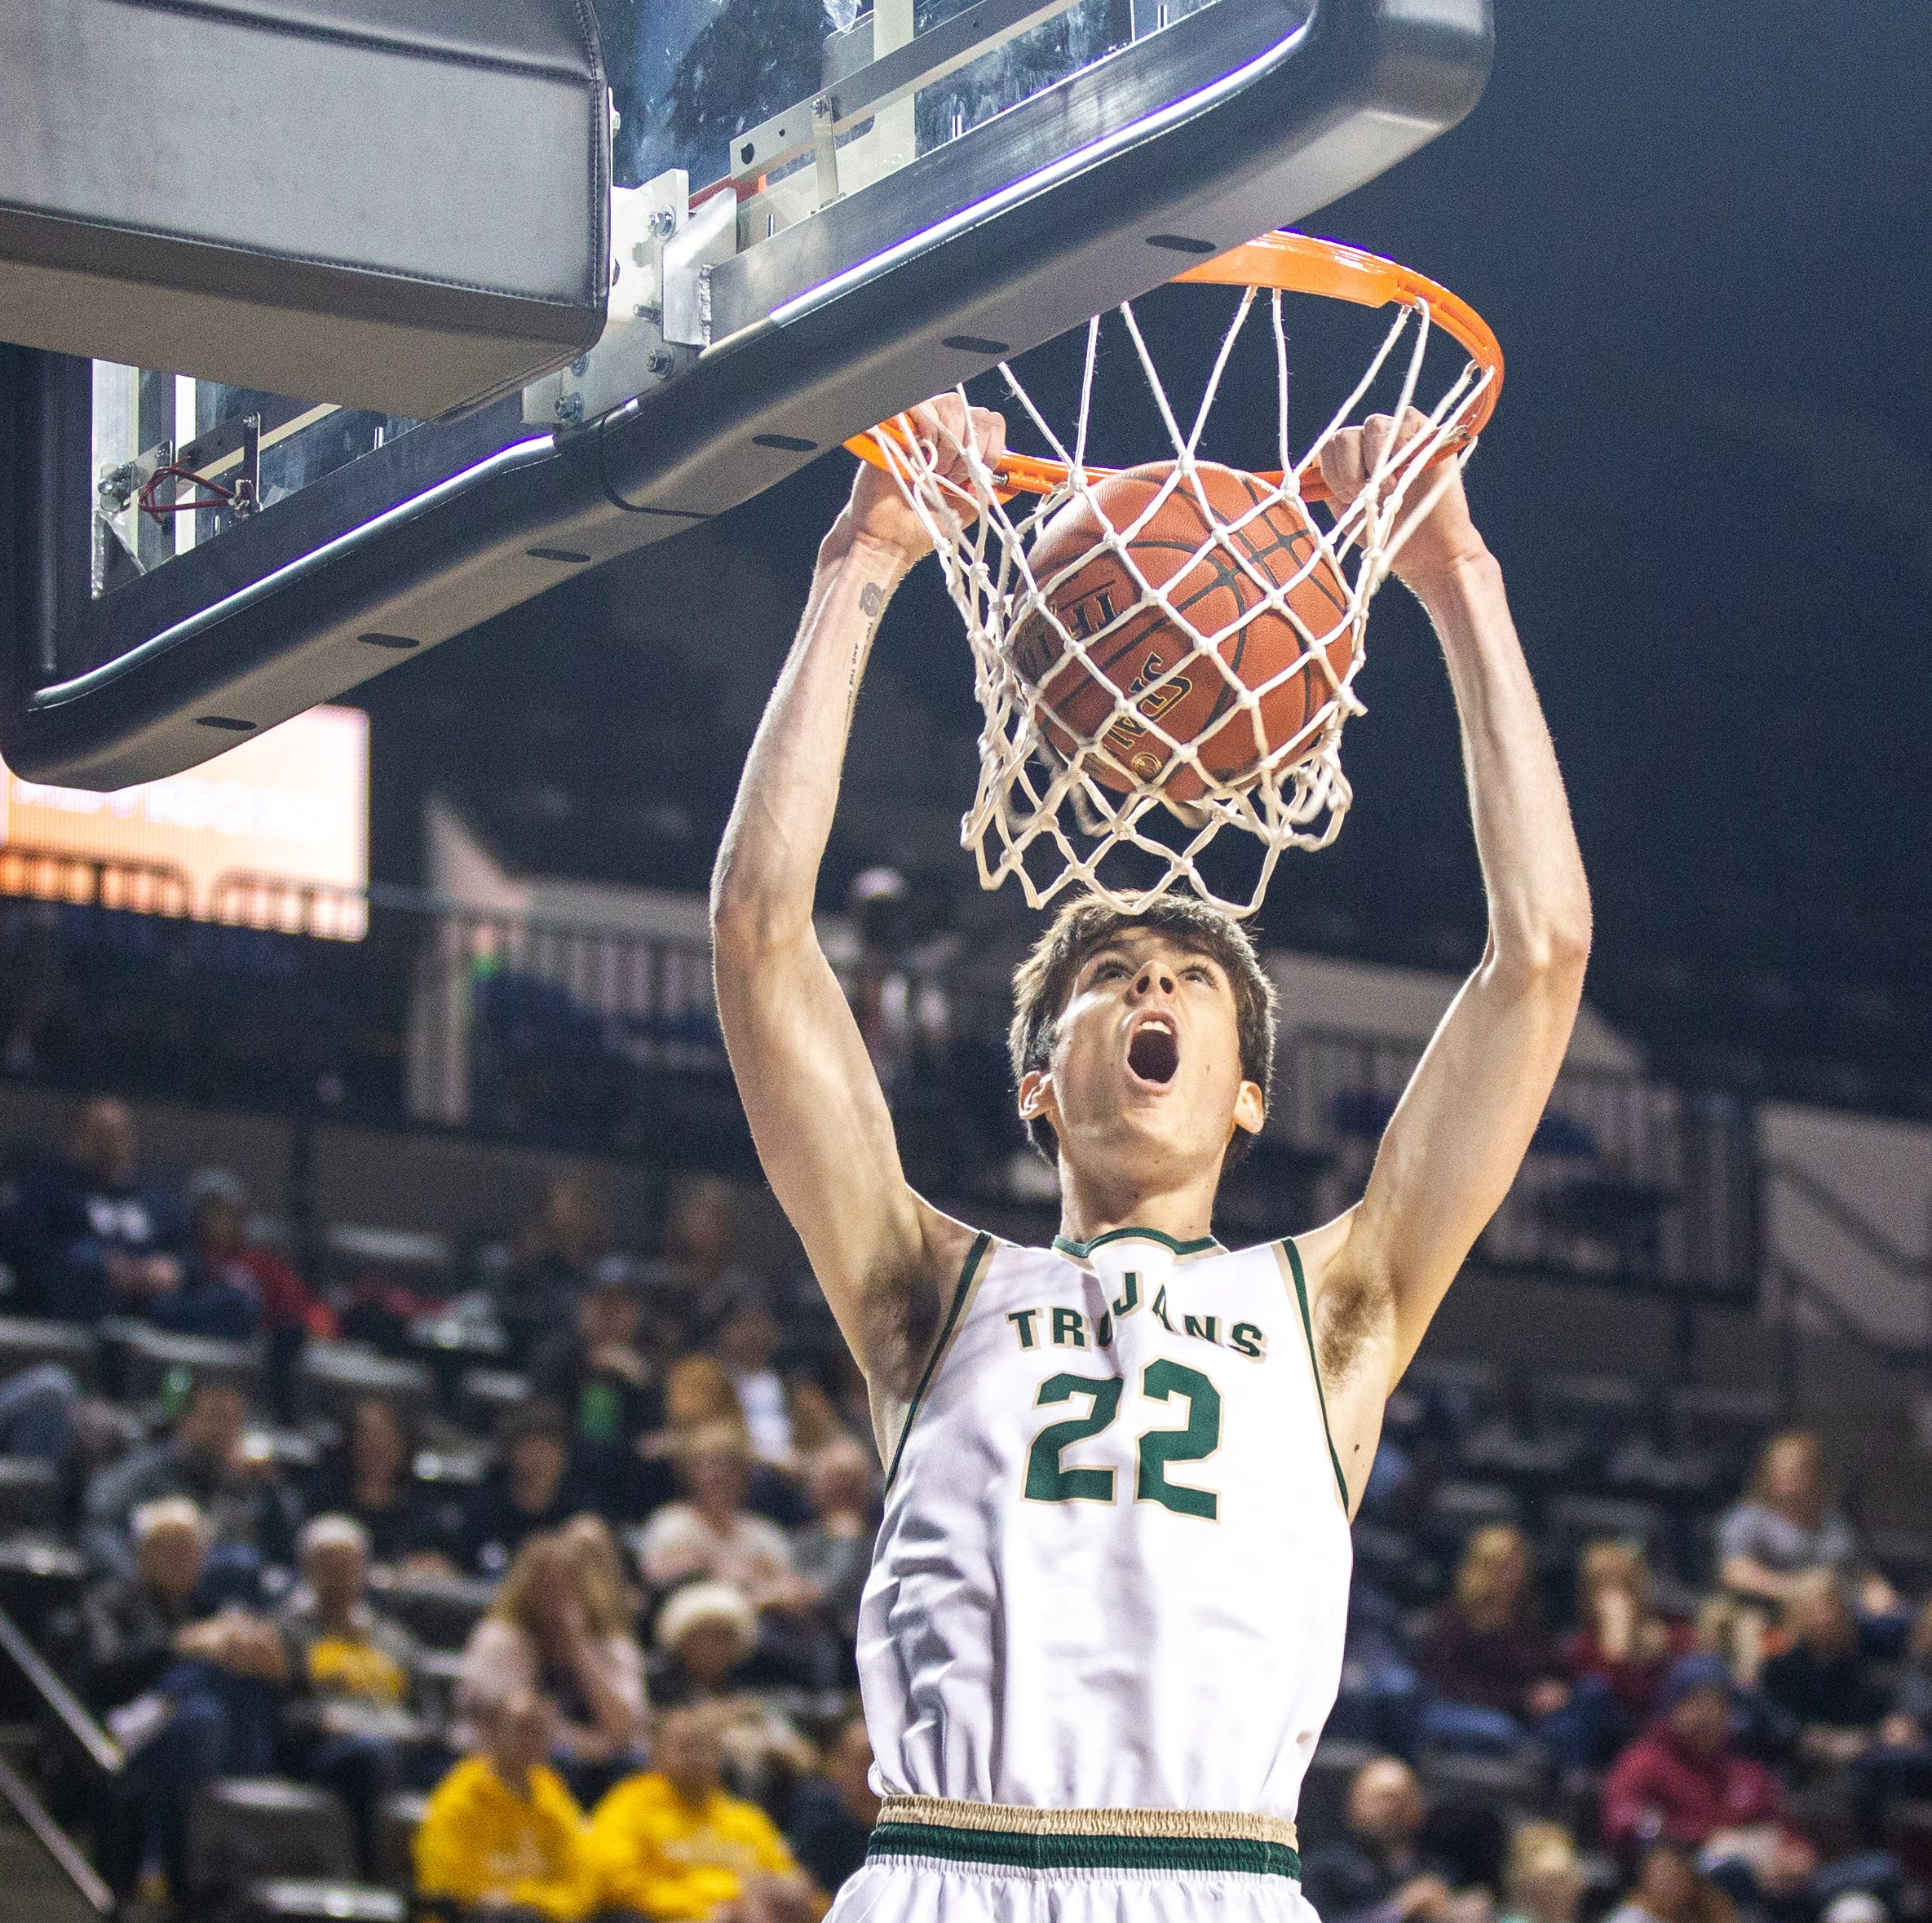 In-depth with Patrick McCaffery: On his Hawkeye future, respect for his father